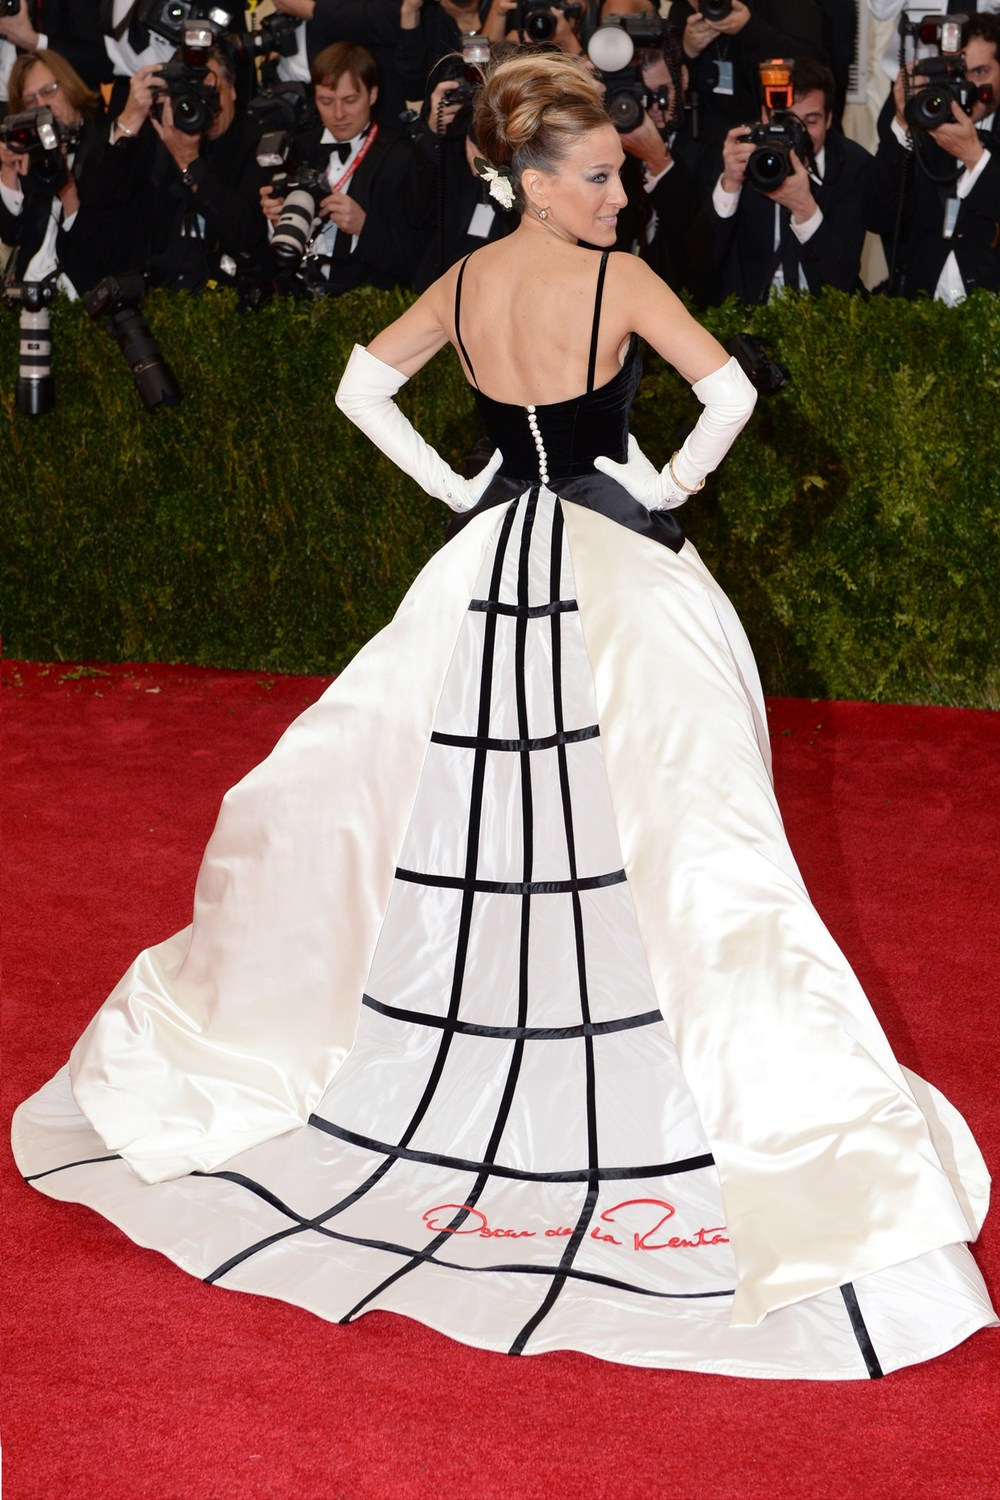 Sarah Jessica Parker can do no wrong! She is one of the ball's co-chairs & wore a custom-made Oscar de la Renta gown.